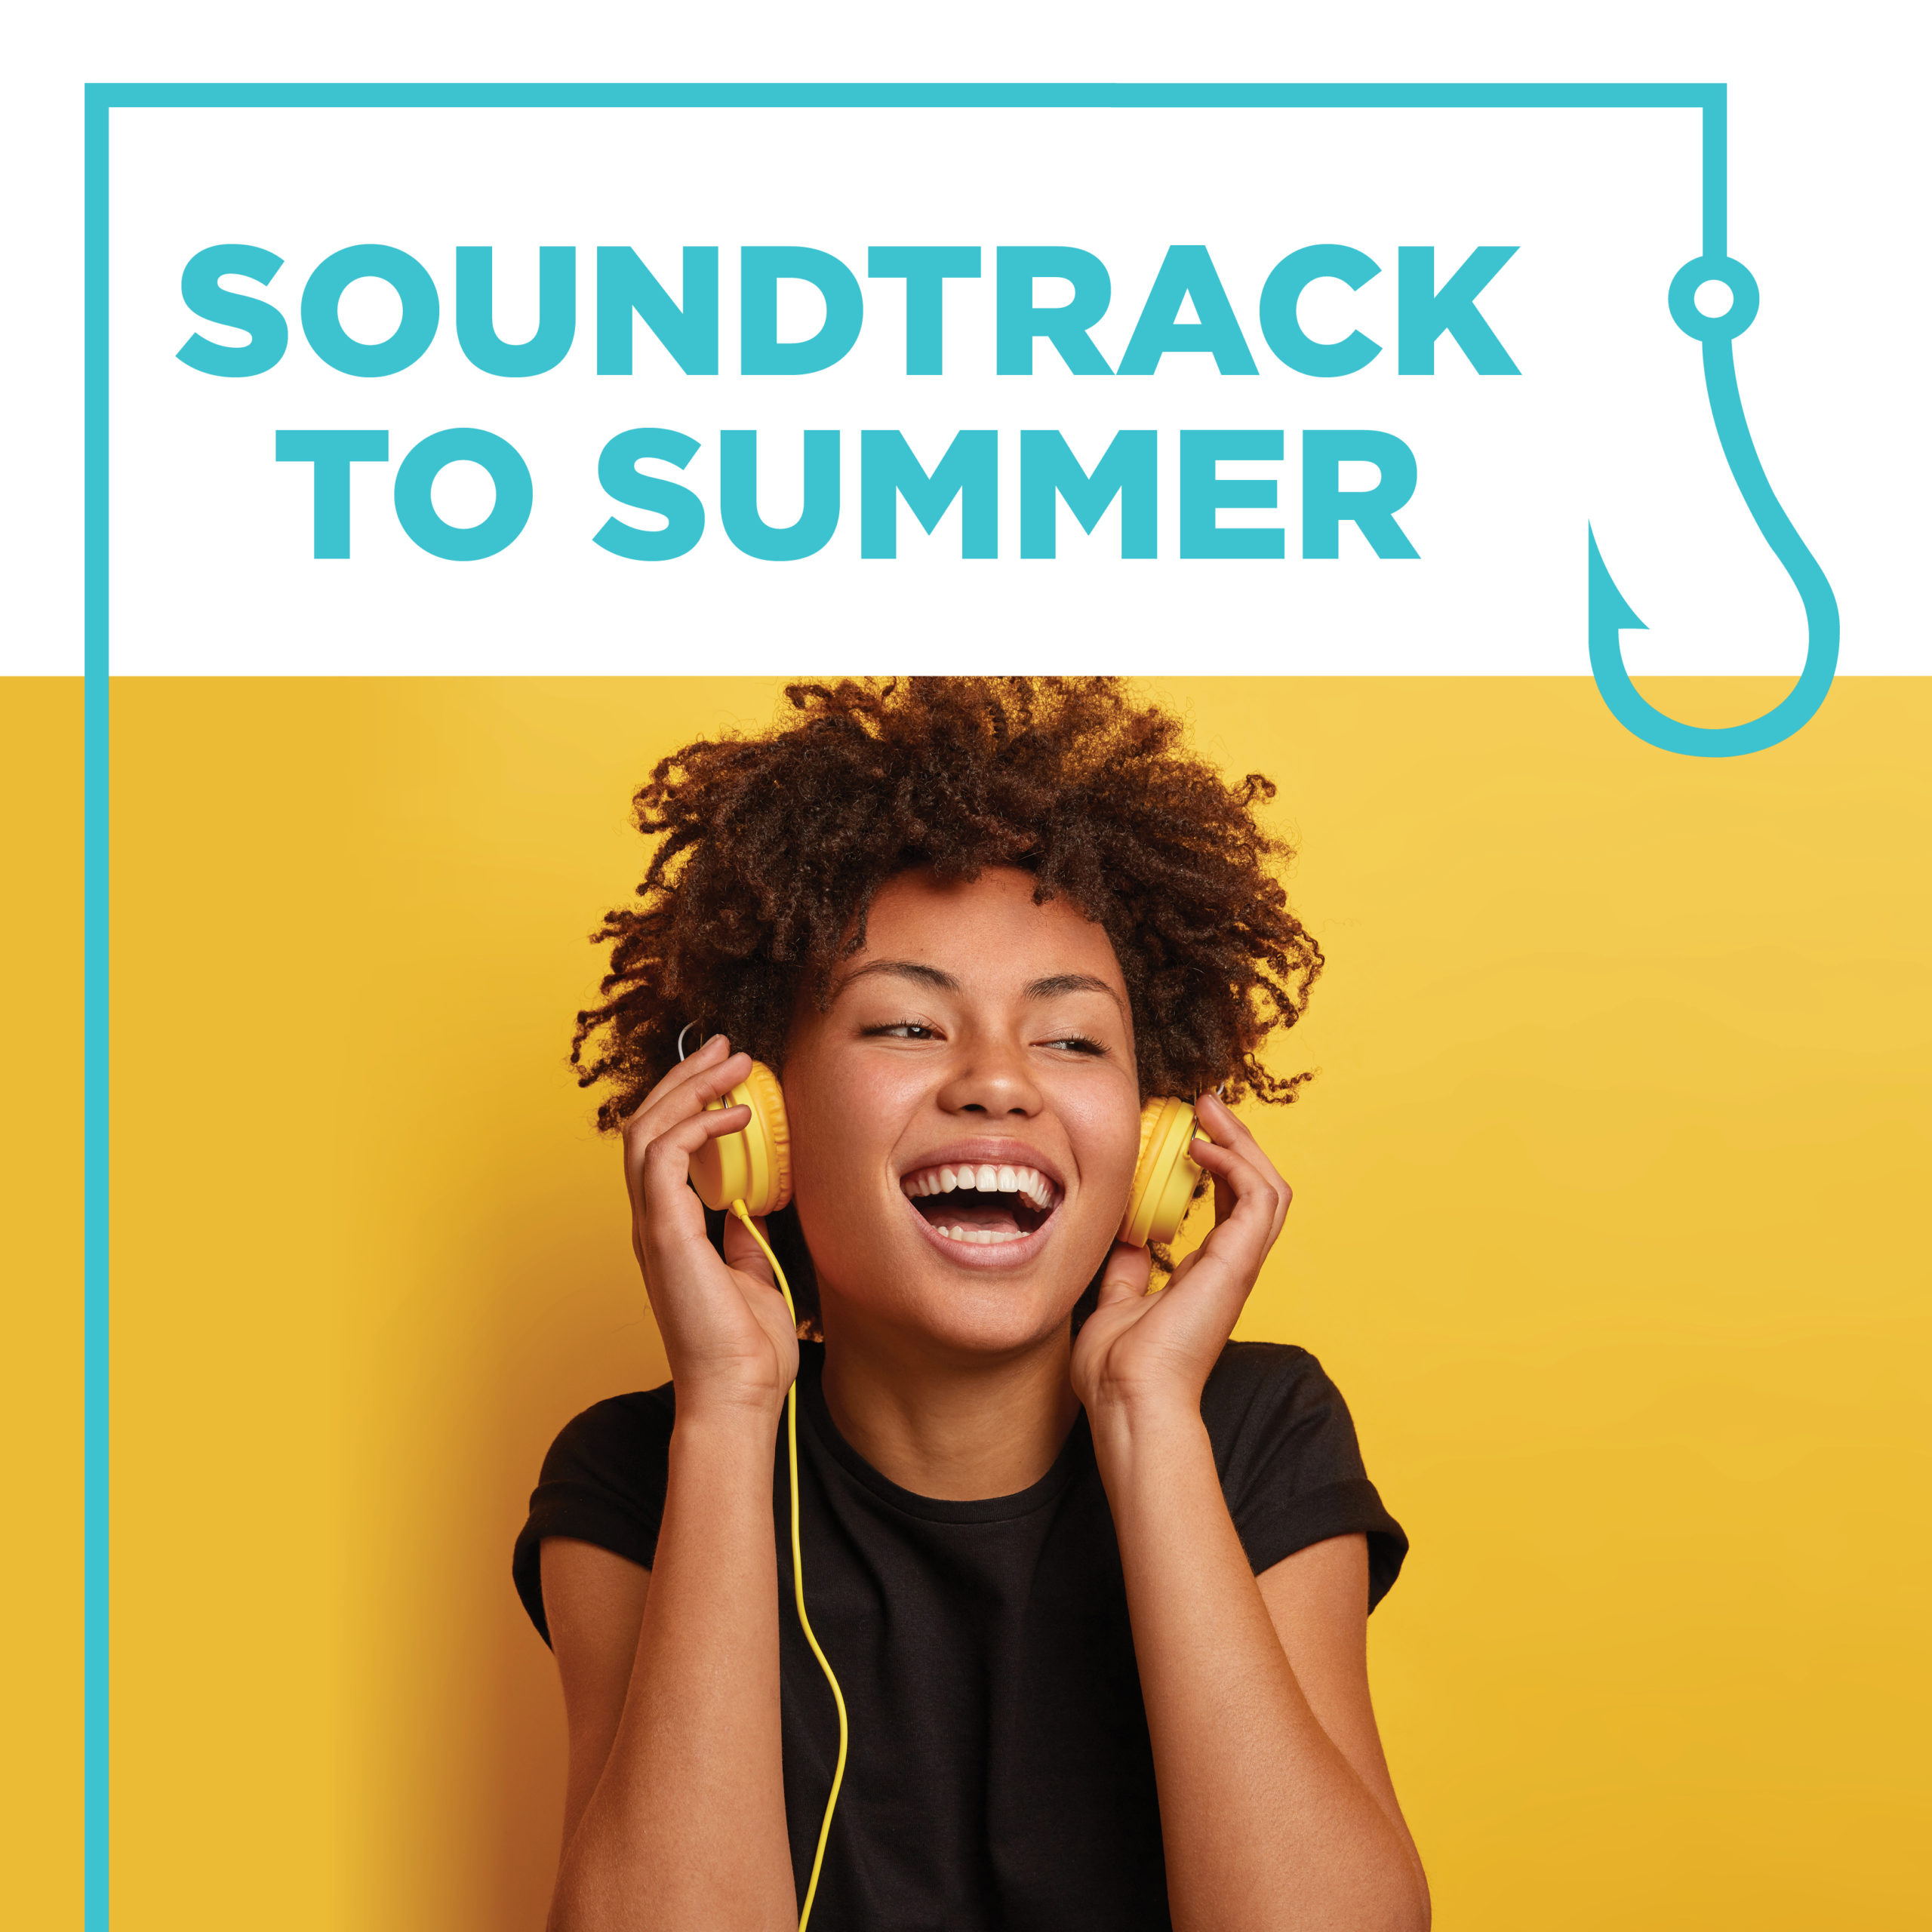 Whale Coast Mall - Soundtrack to Summer